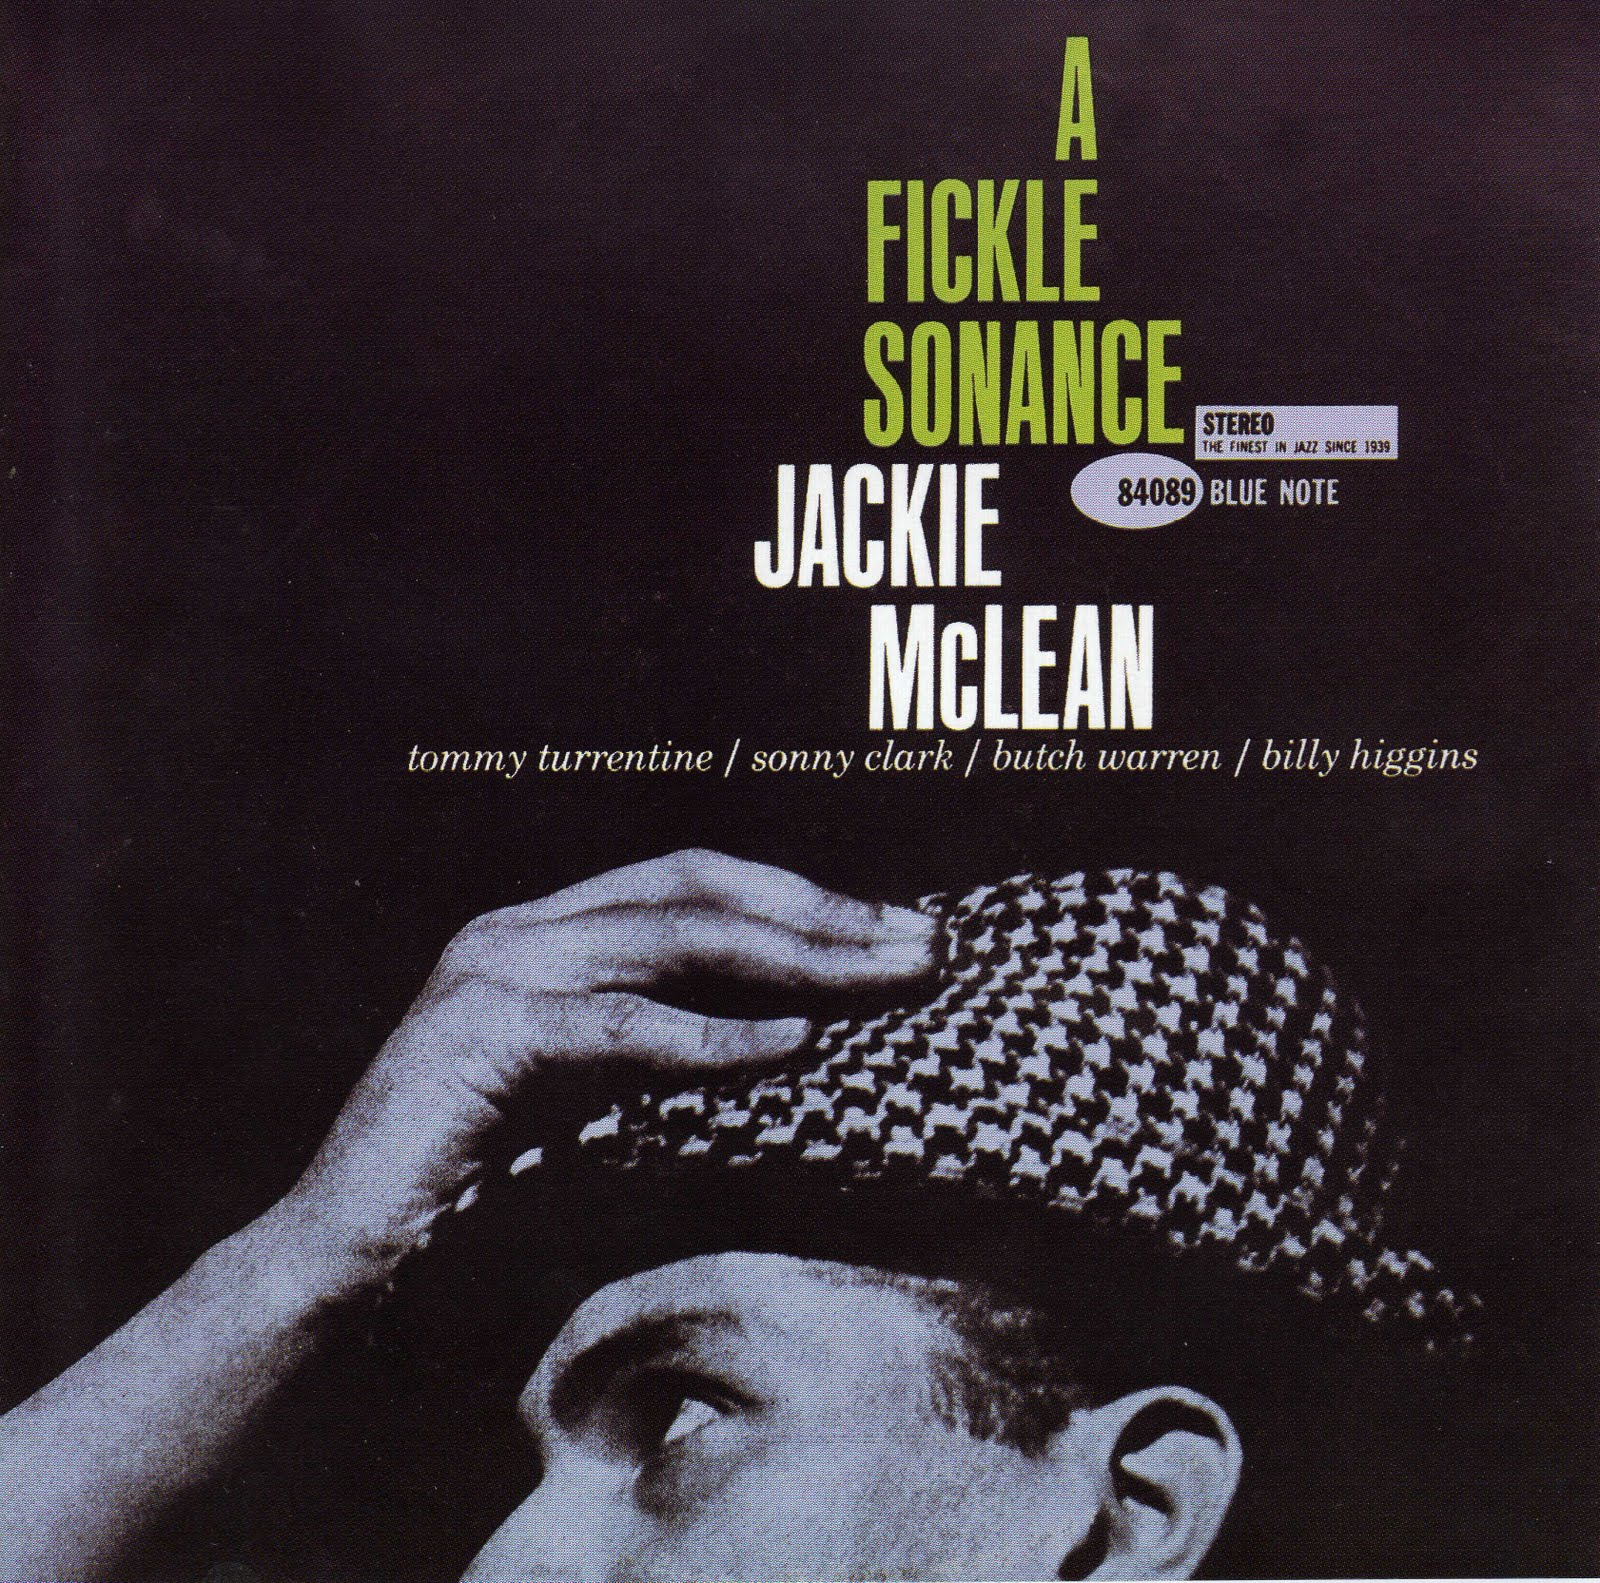 jackie mclean - a fickle sonance (sleeve art)